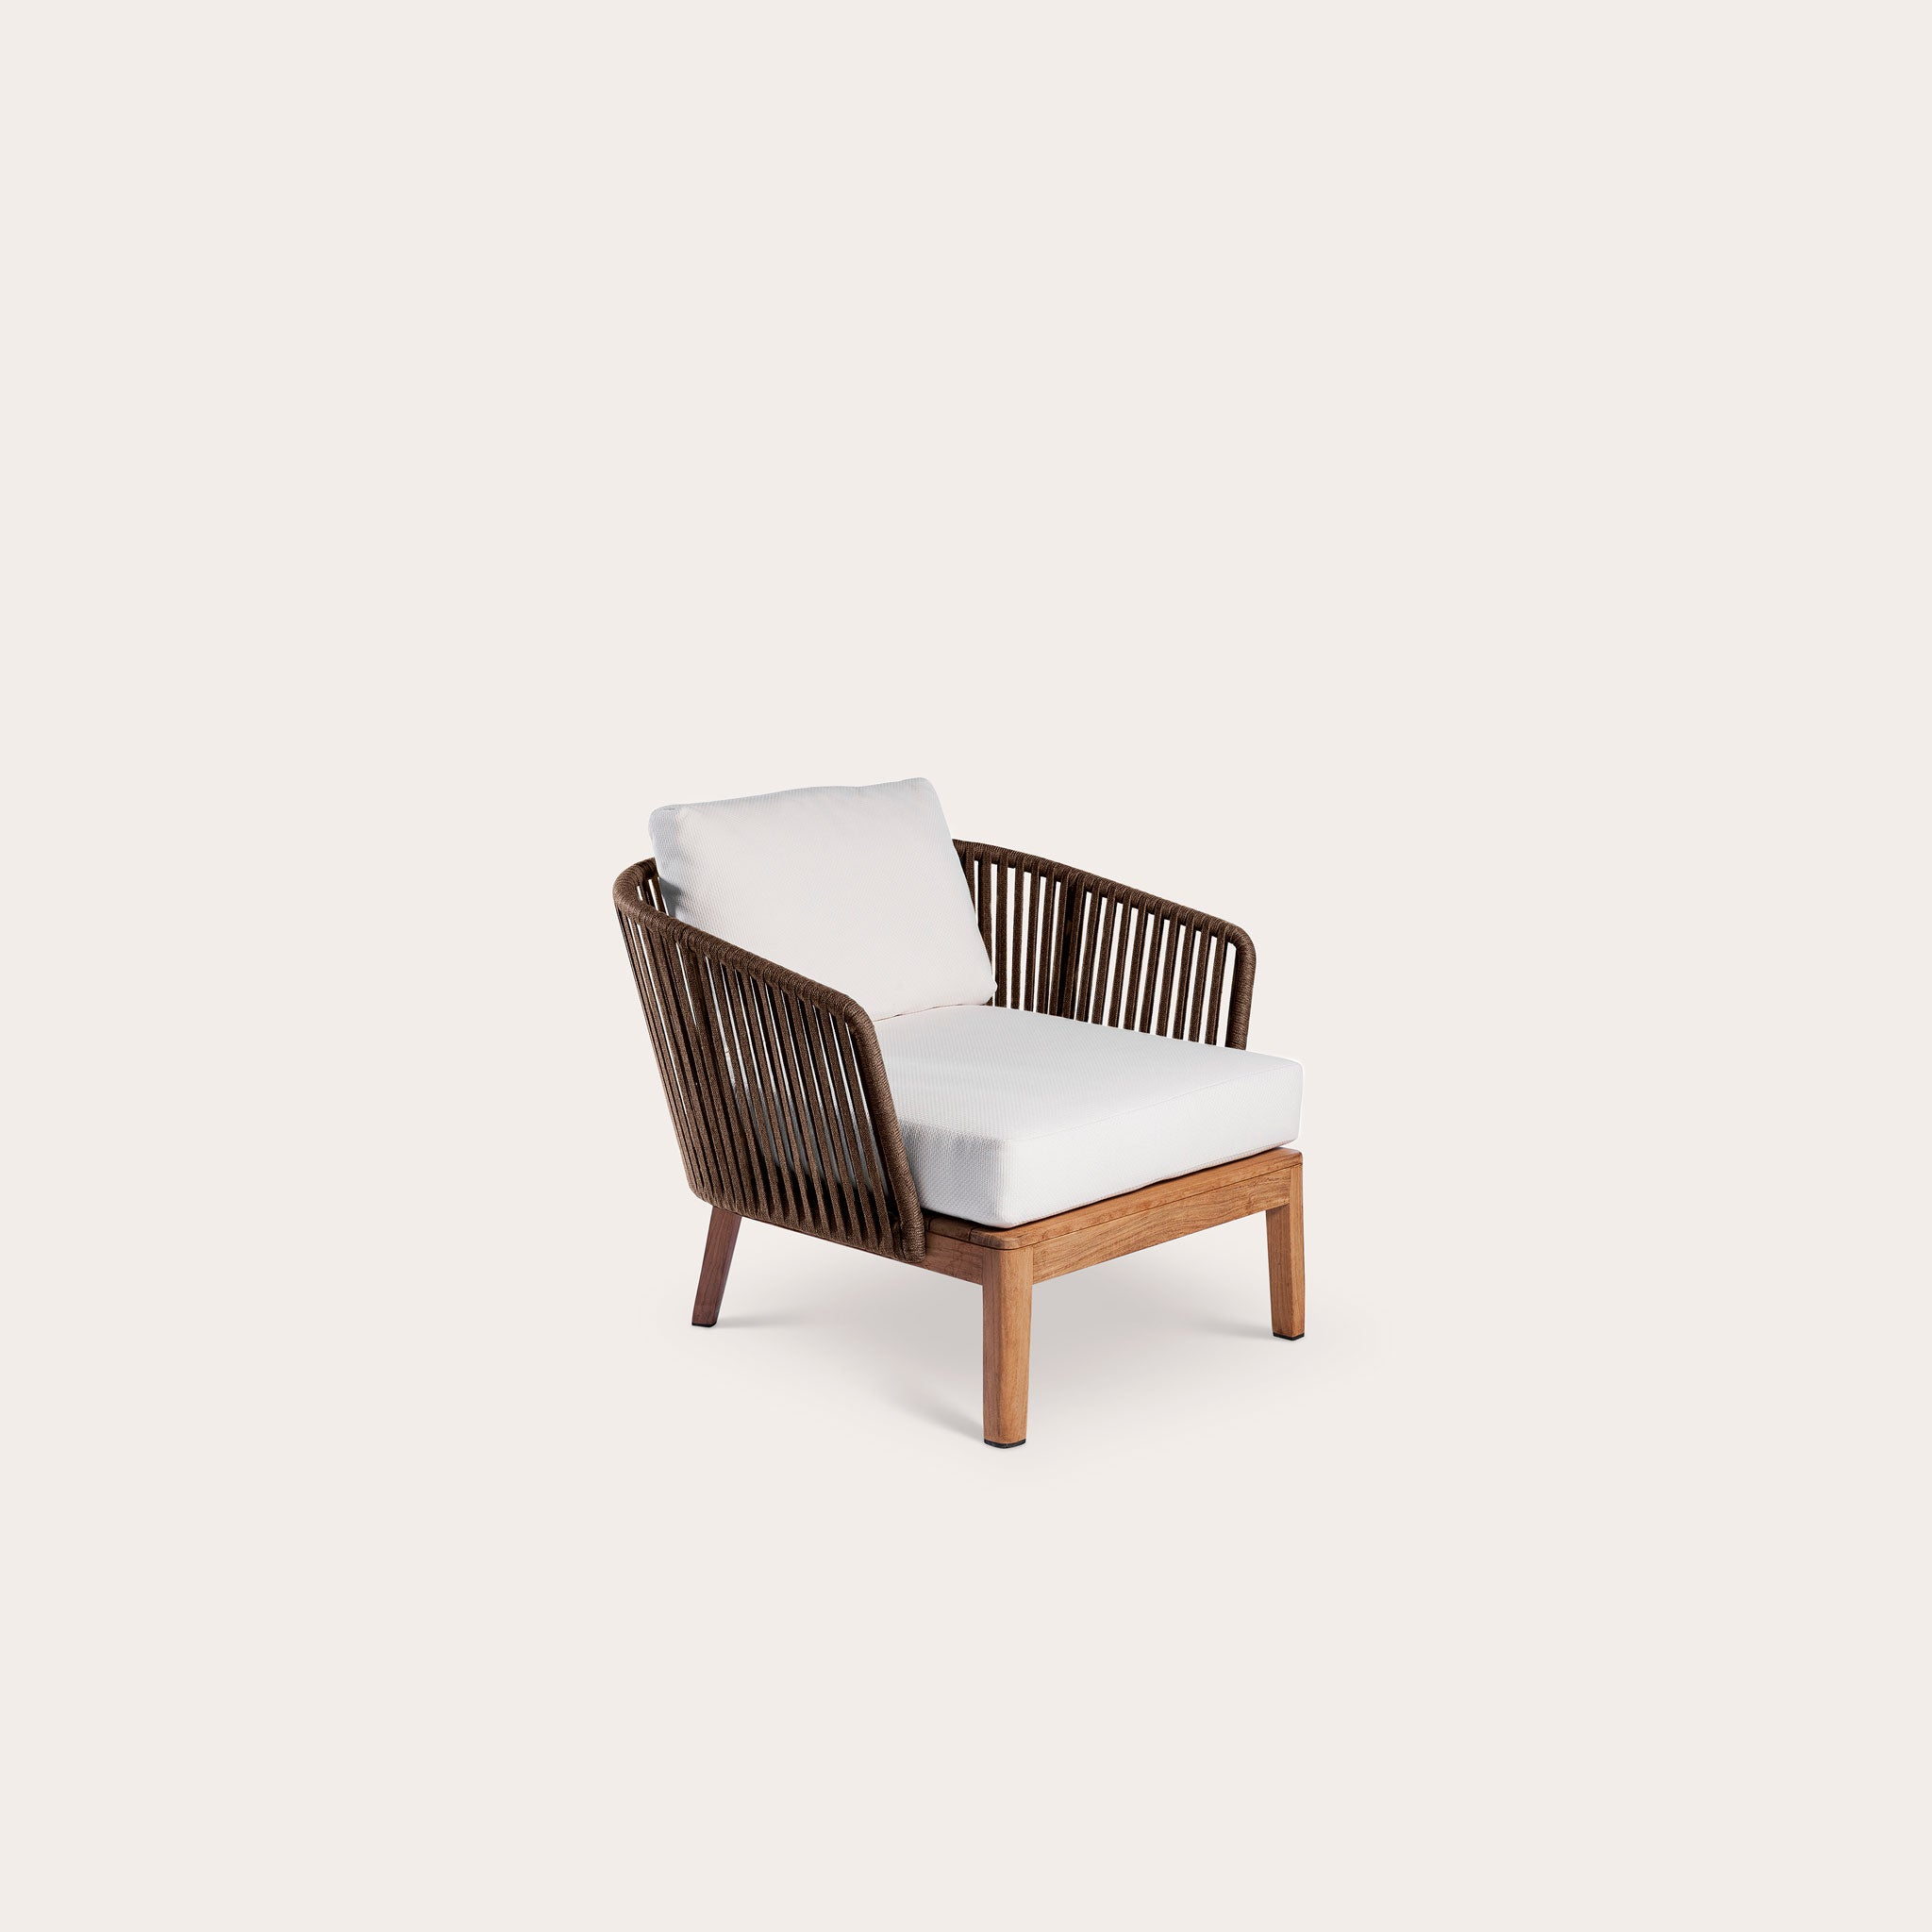 MOOD Club Chair Outdoor Studio Segers Designer Furniture Sku: 007-200-10693